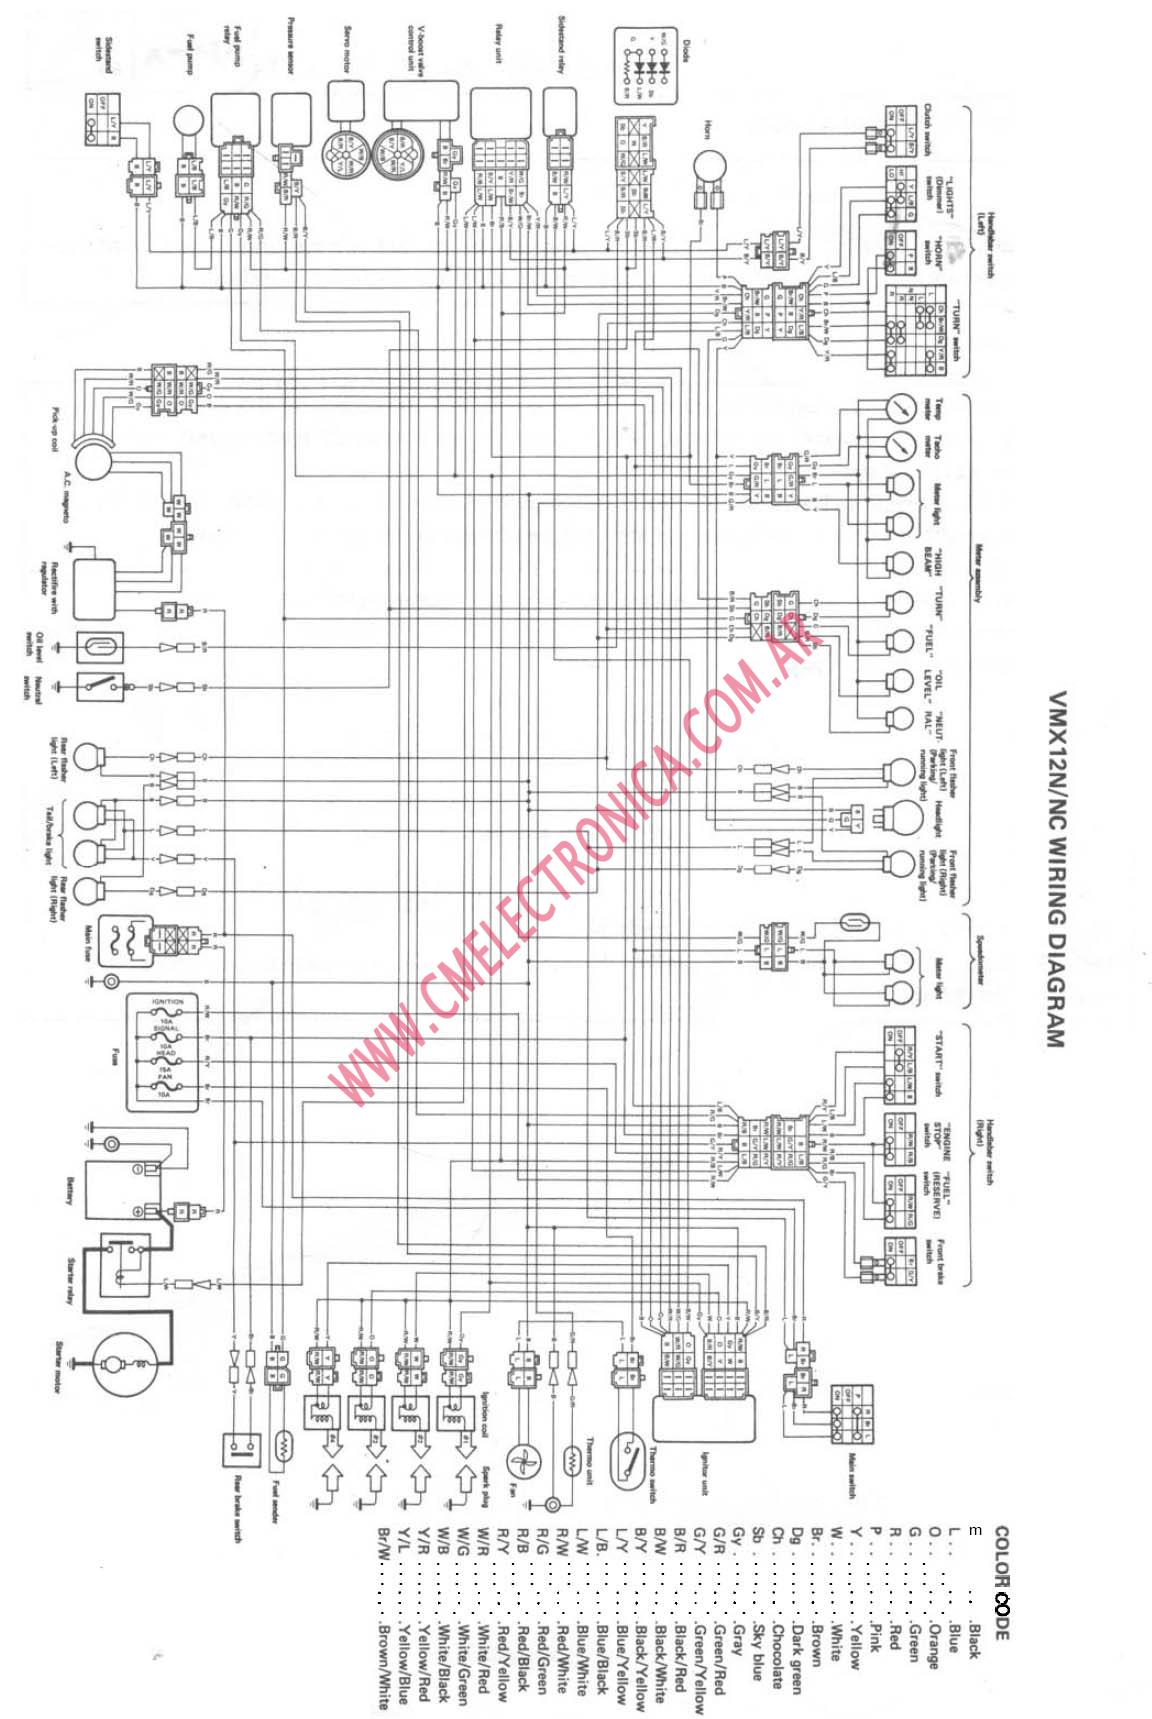 yamaha analog tachometer wiring diagram  u2013 the wiring